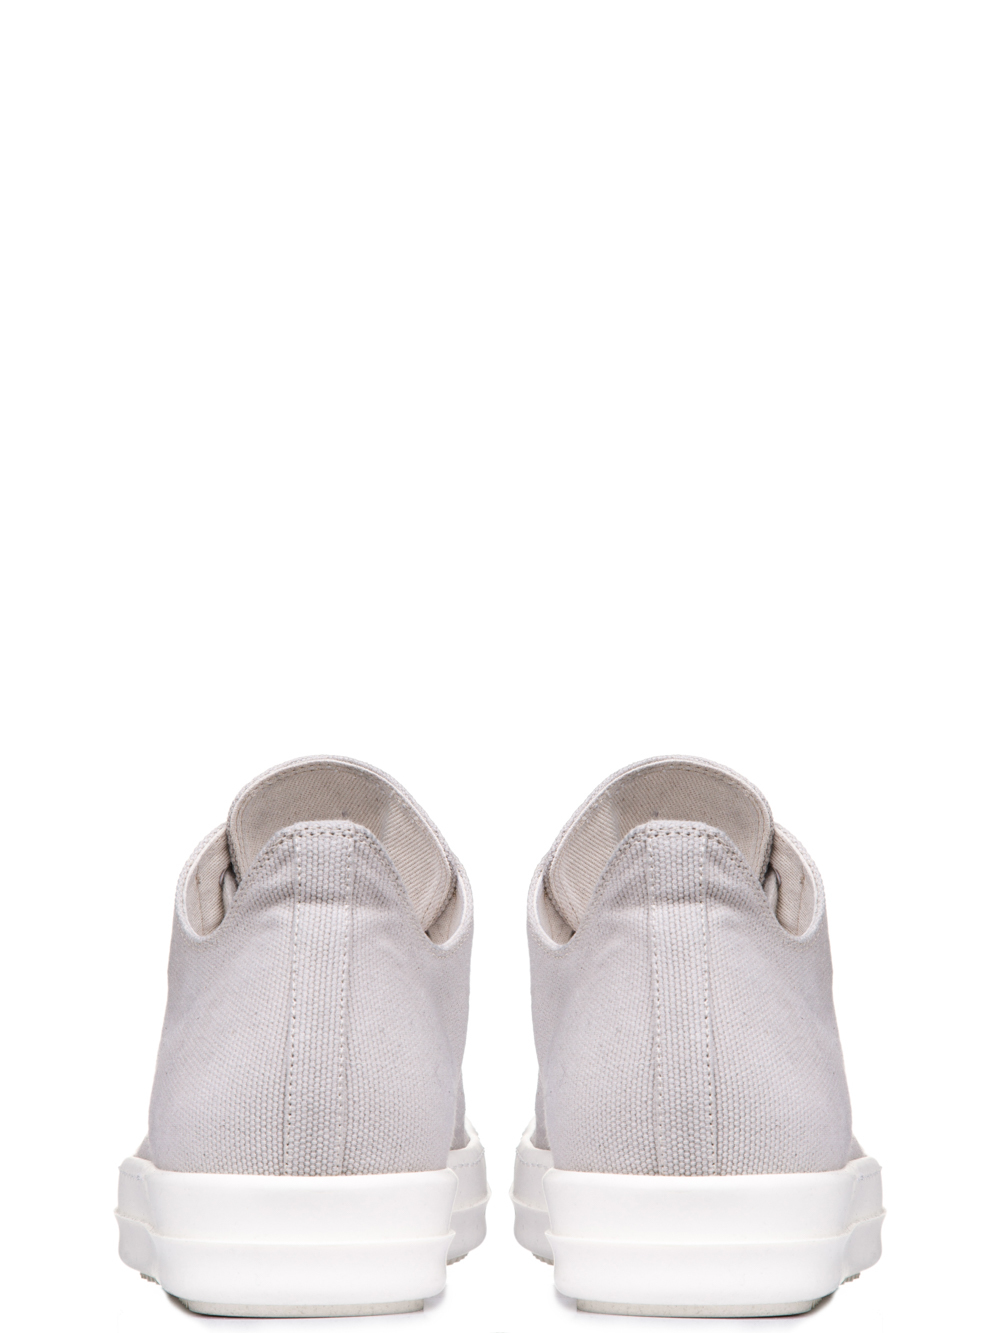 DRKSHDW LOW SNEAKERS IN PEARL BEIGE